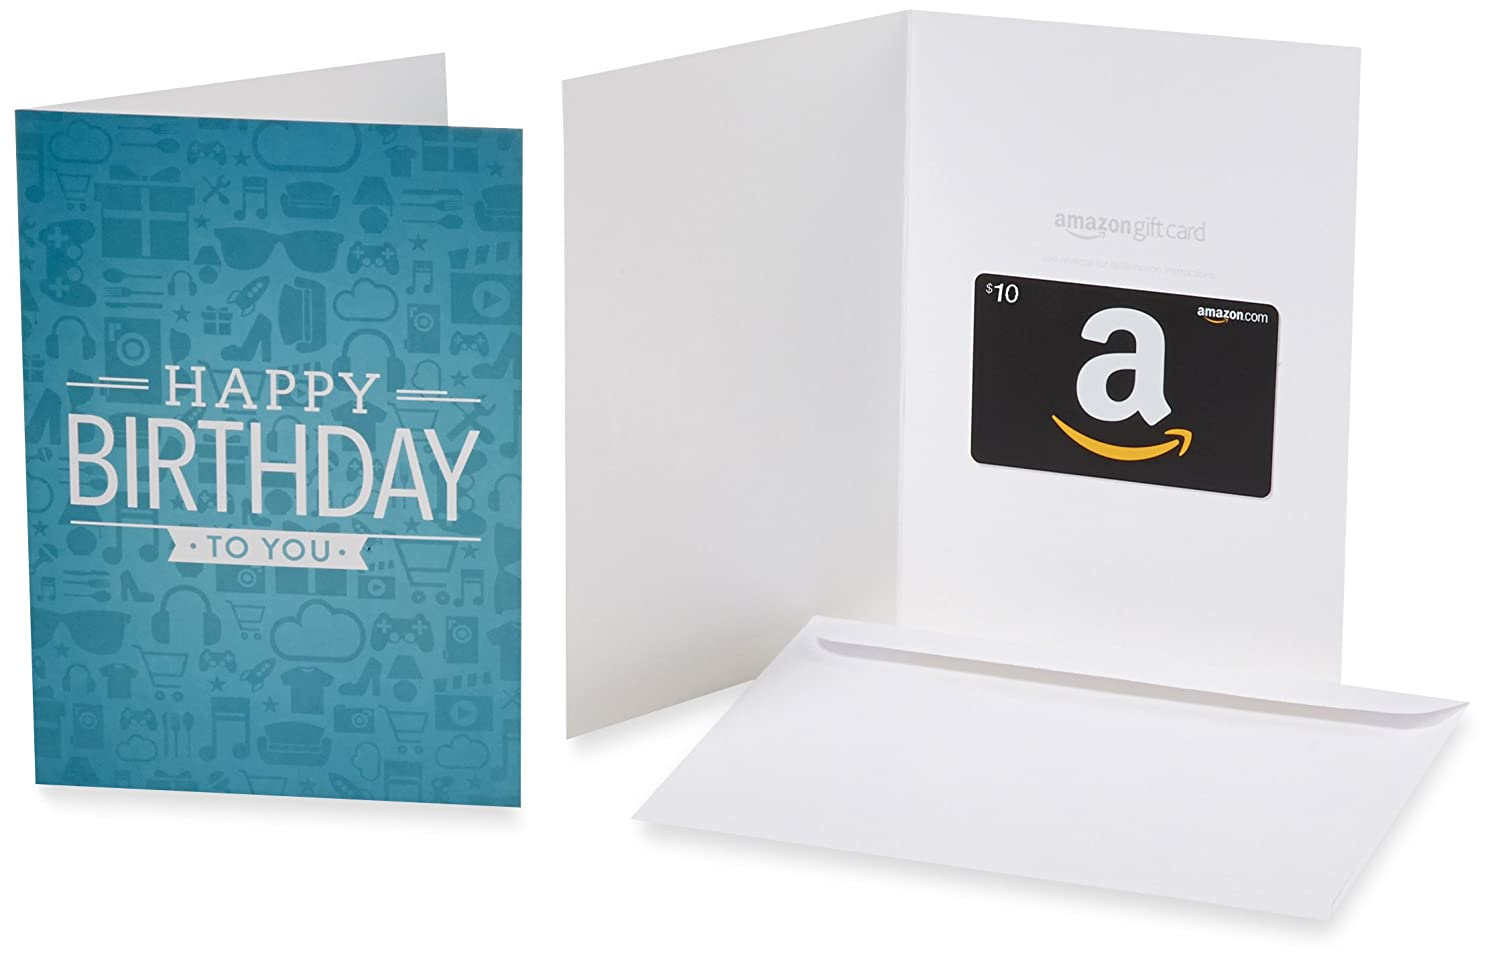 Amazon 10 Gift Card In A Greeting Birthday Icons Design Cards